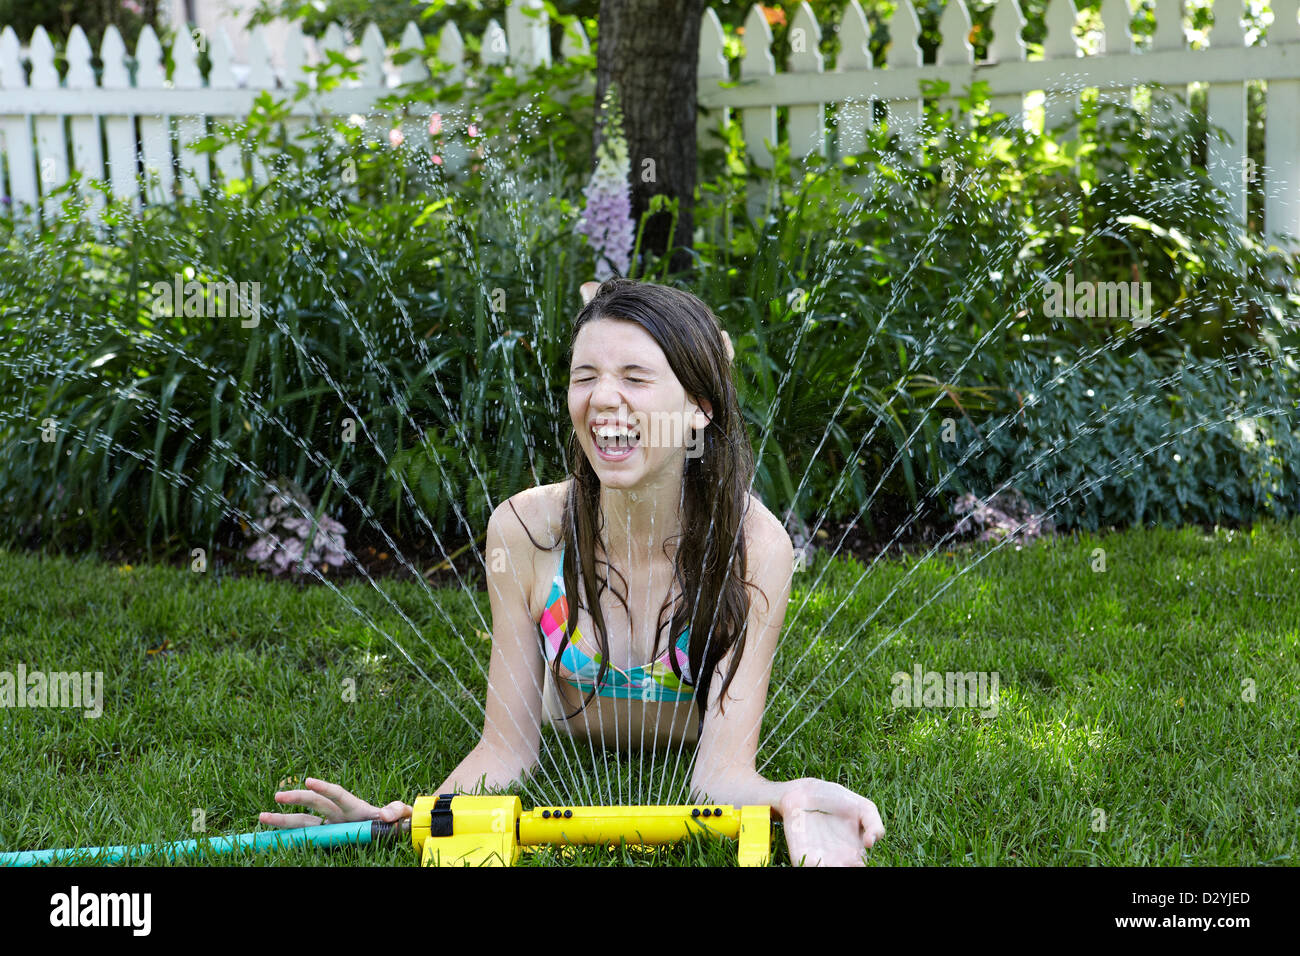 12 year old girl playing with water sprinkler. - Stock Image